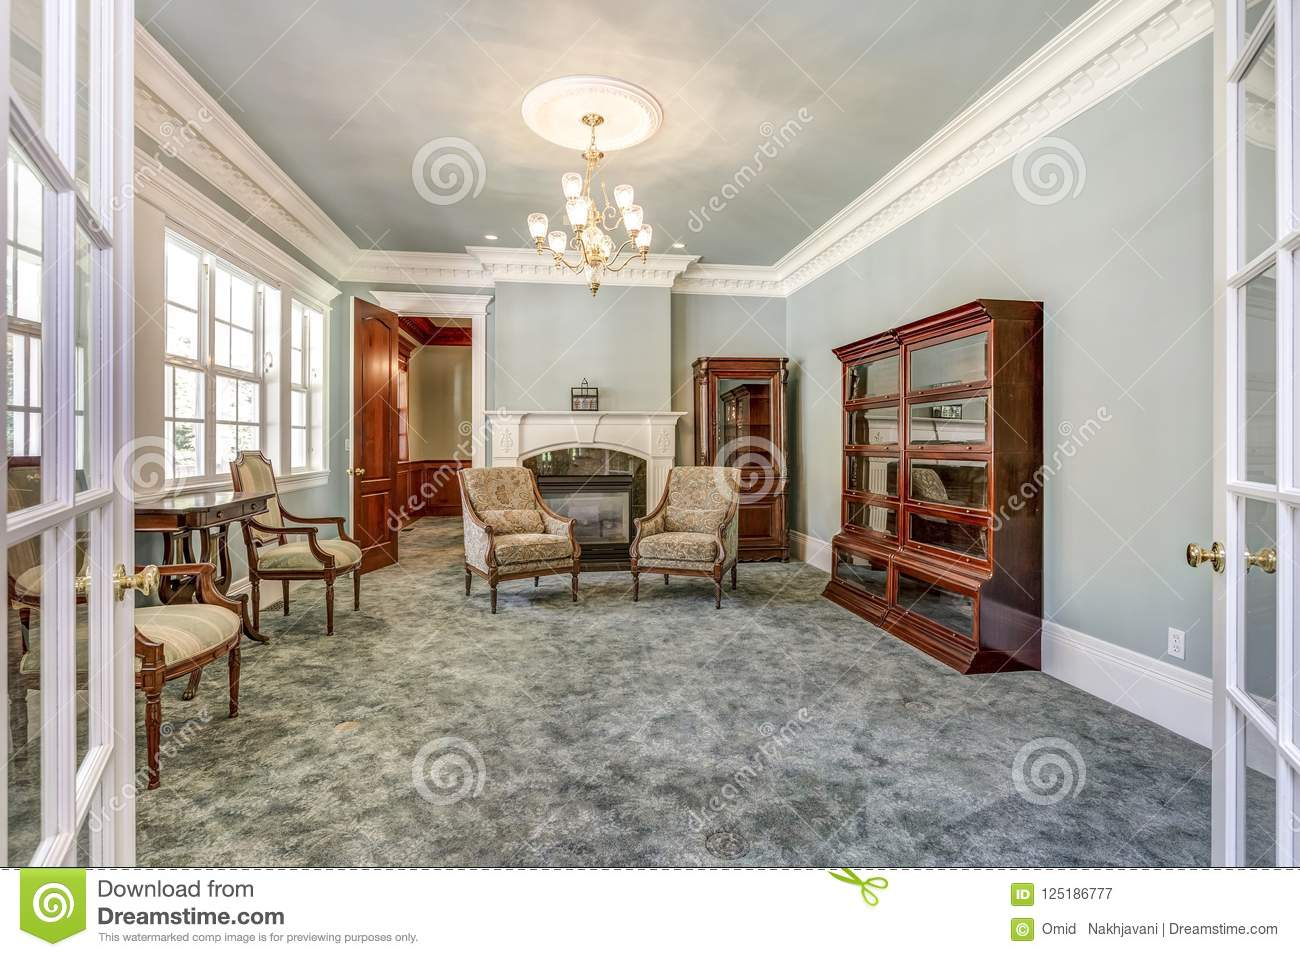 Luxury Home Interior With Vintage Furniture Stock Image Image Of Indoor Bright 125186777